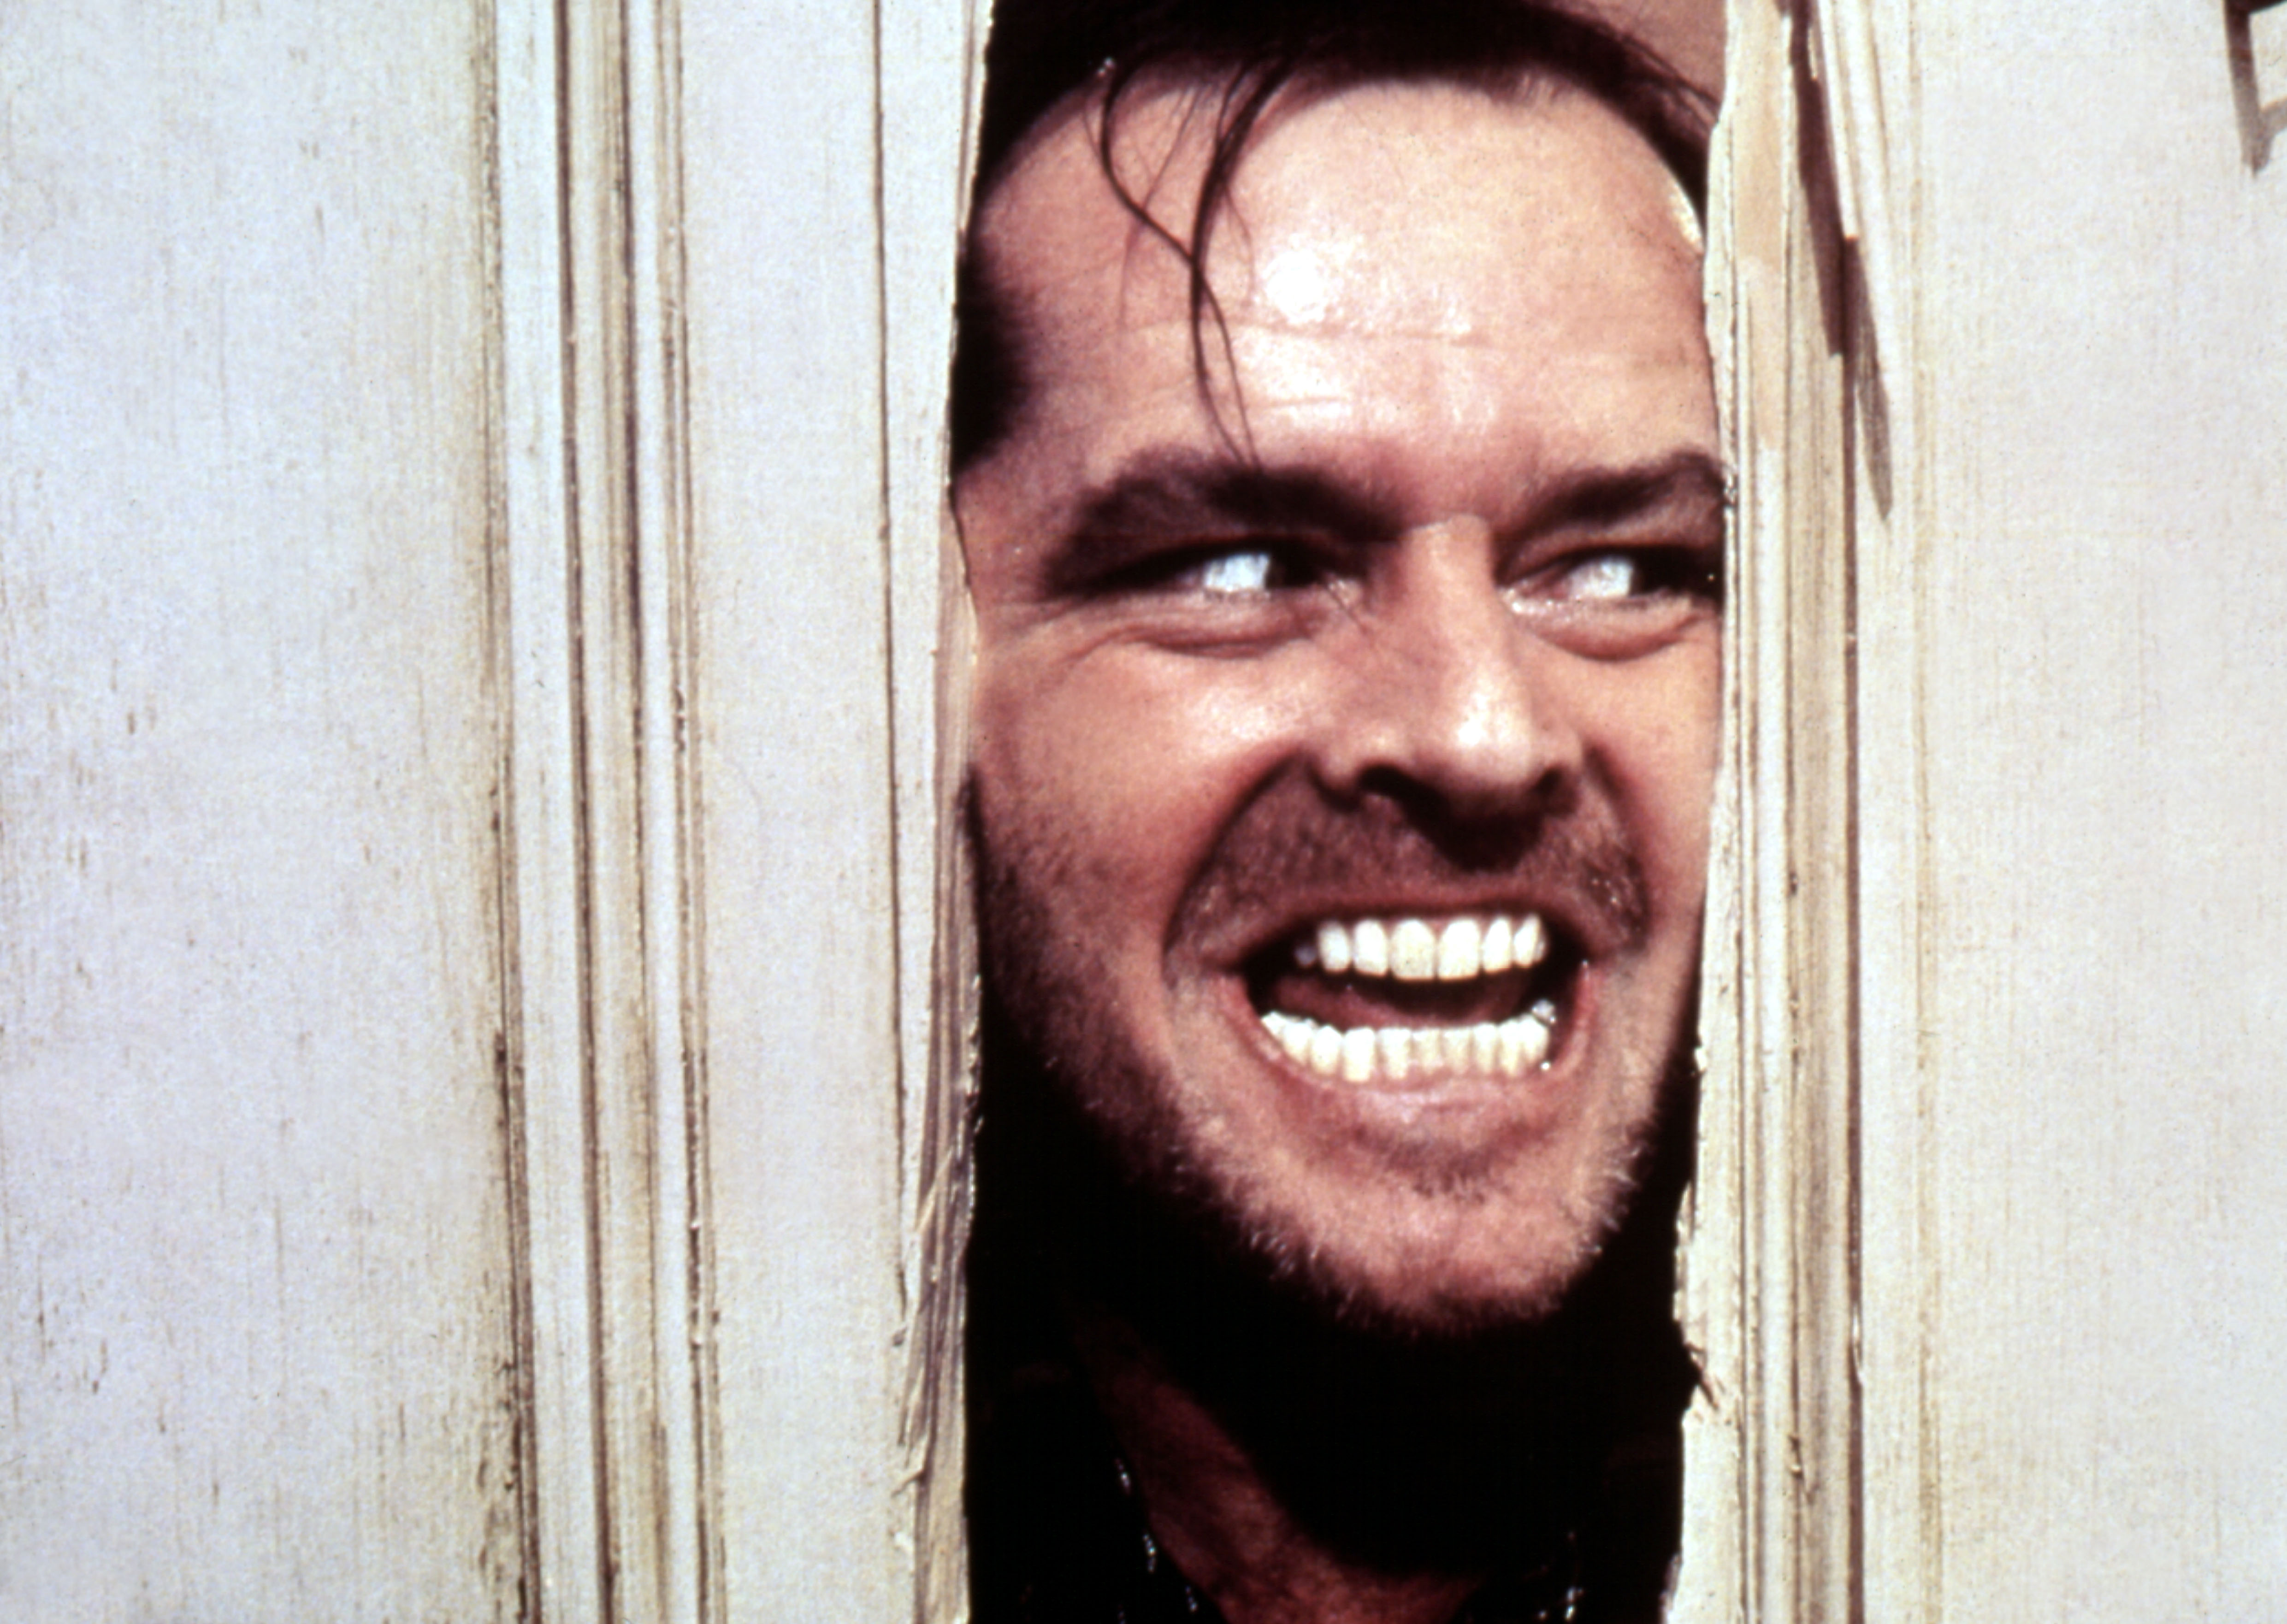 Sequel to Stephen King's The Shining to be adapted into a movie